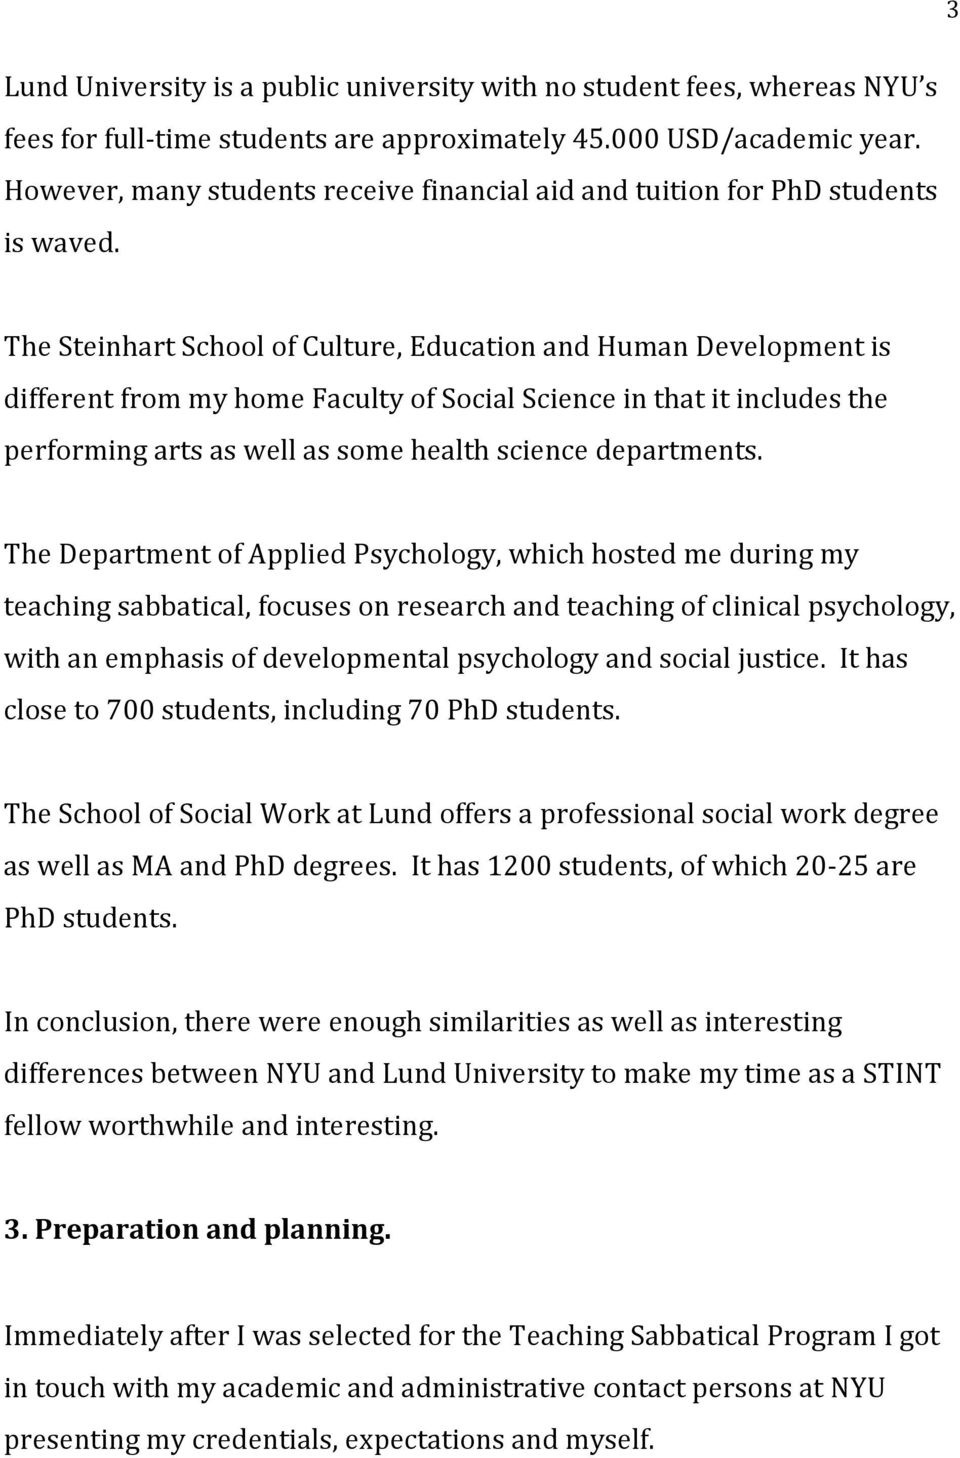 The Steinhart School of Culture, Education and Human Development is different from my home Faculty of Social Science in that it includes the performing arts as well as some health science departments.